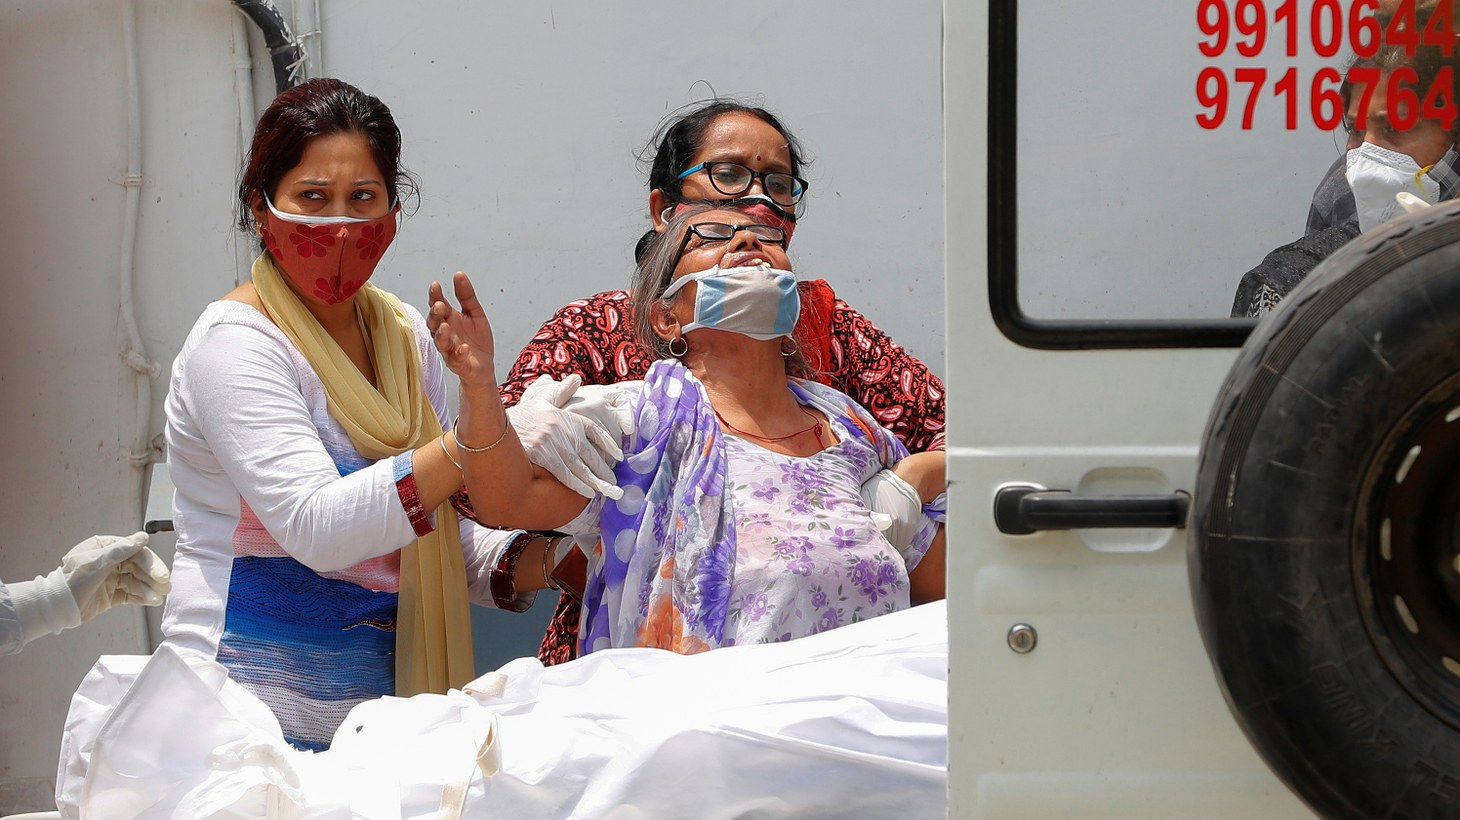 COVID-19 deaths in India hit a new high on Monday. The country recorded more than 4,000 deaths from the disease. Non-profit Saahas for Cause is mobilizing to help support families in need in India.